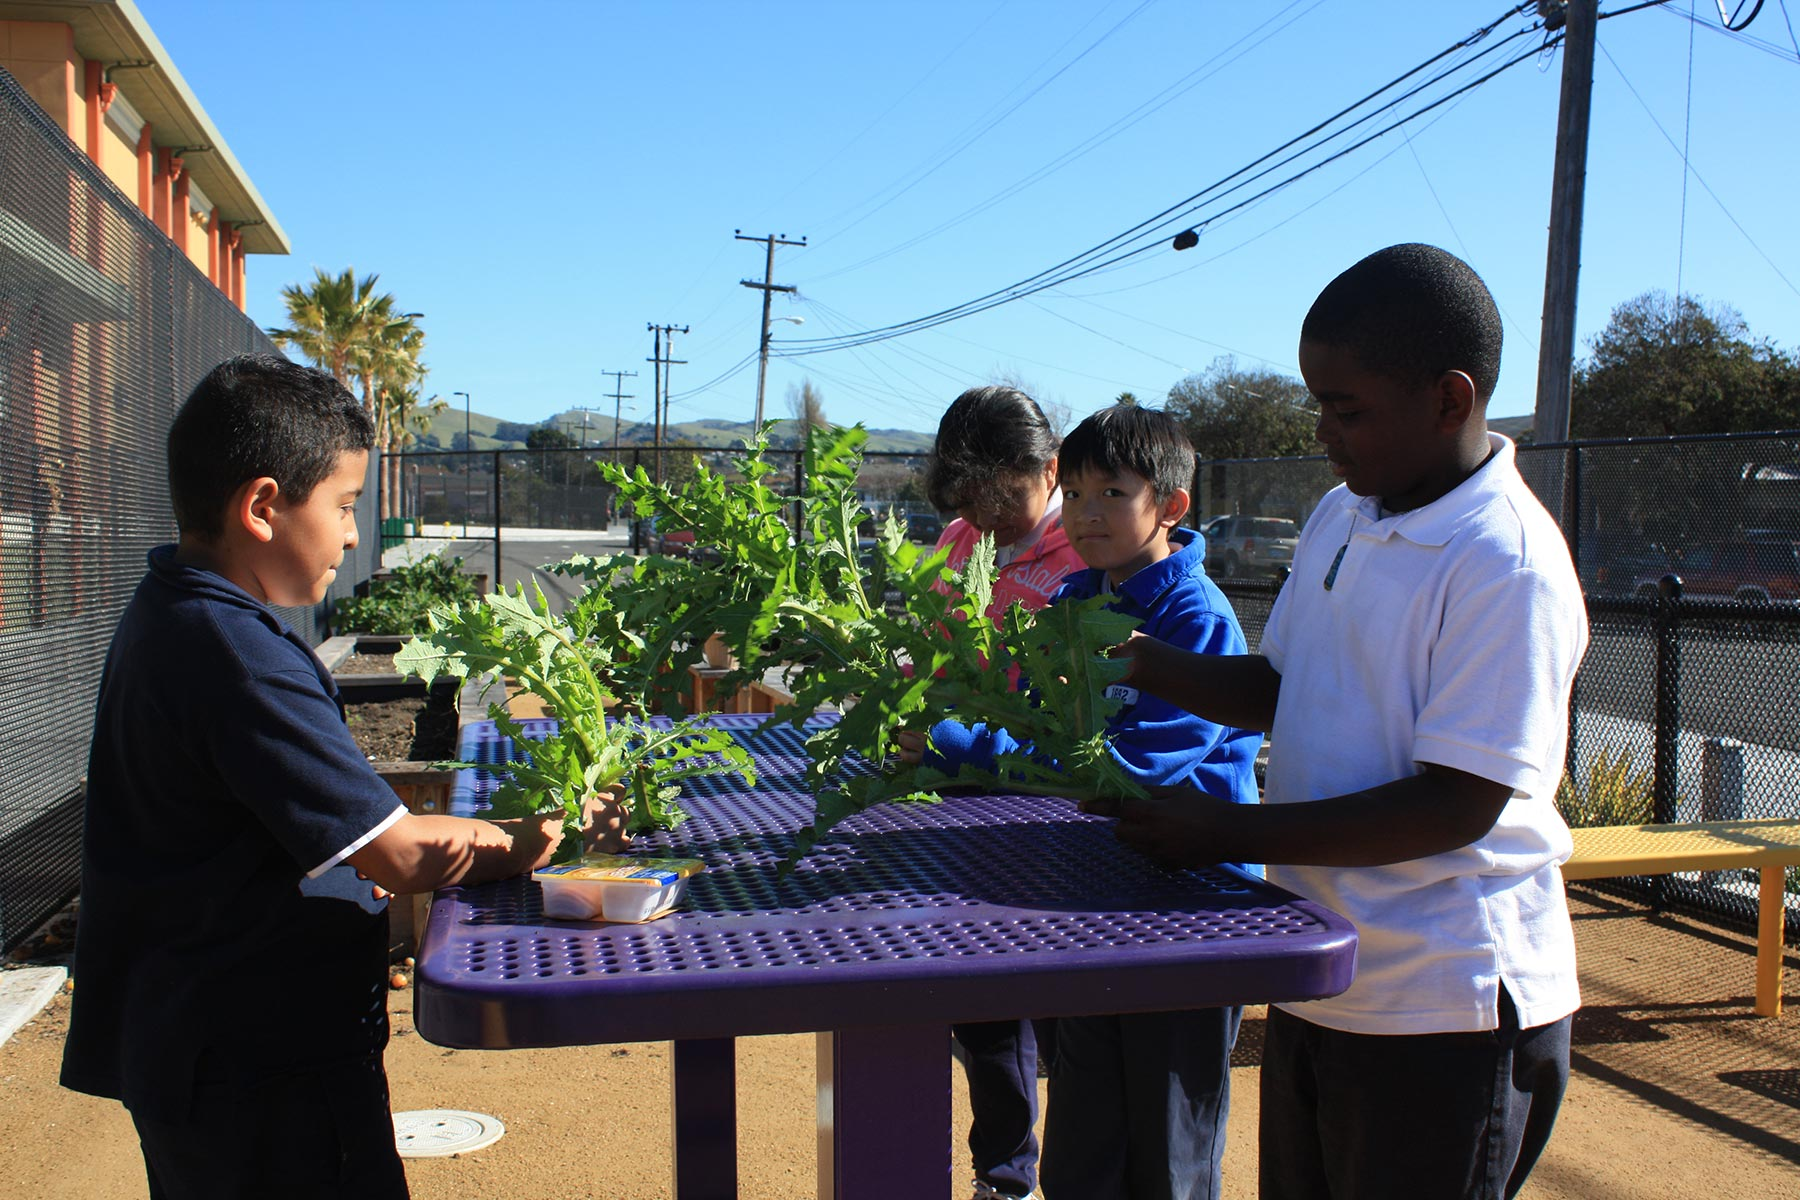 Sustainable Design Services - Ford Elementary School Garden 2